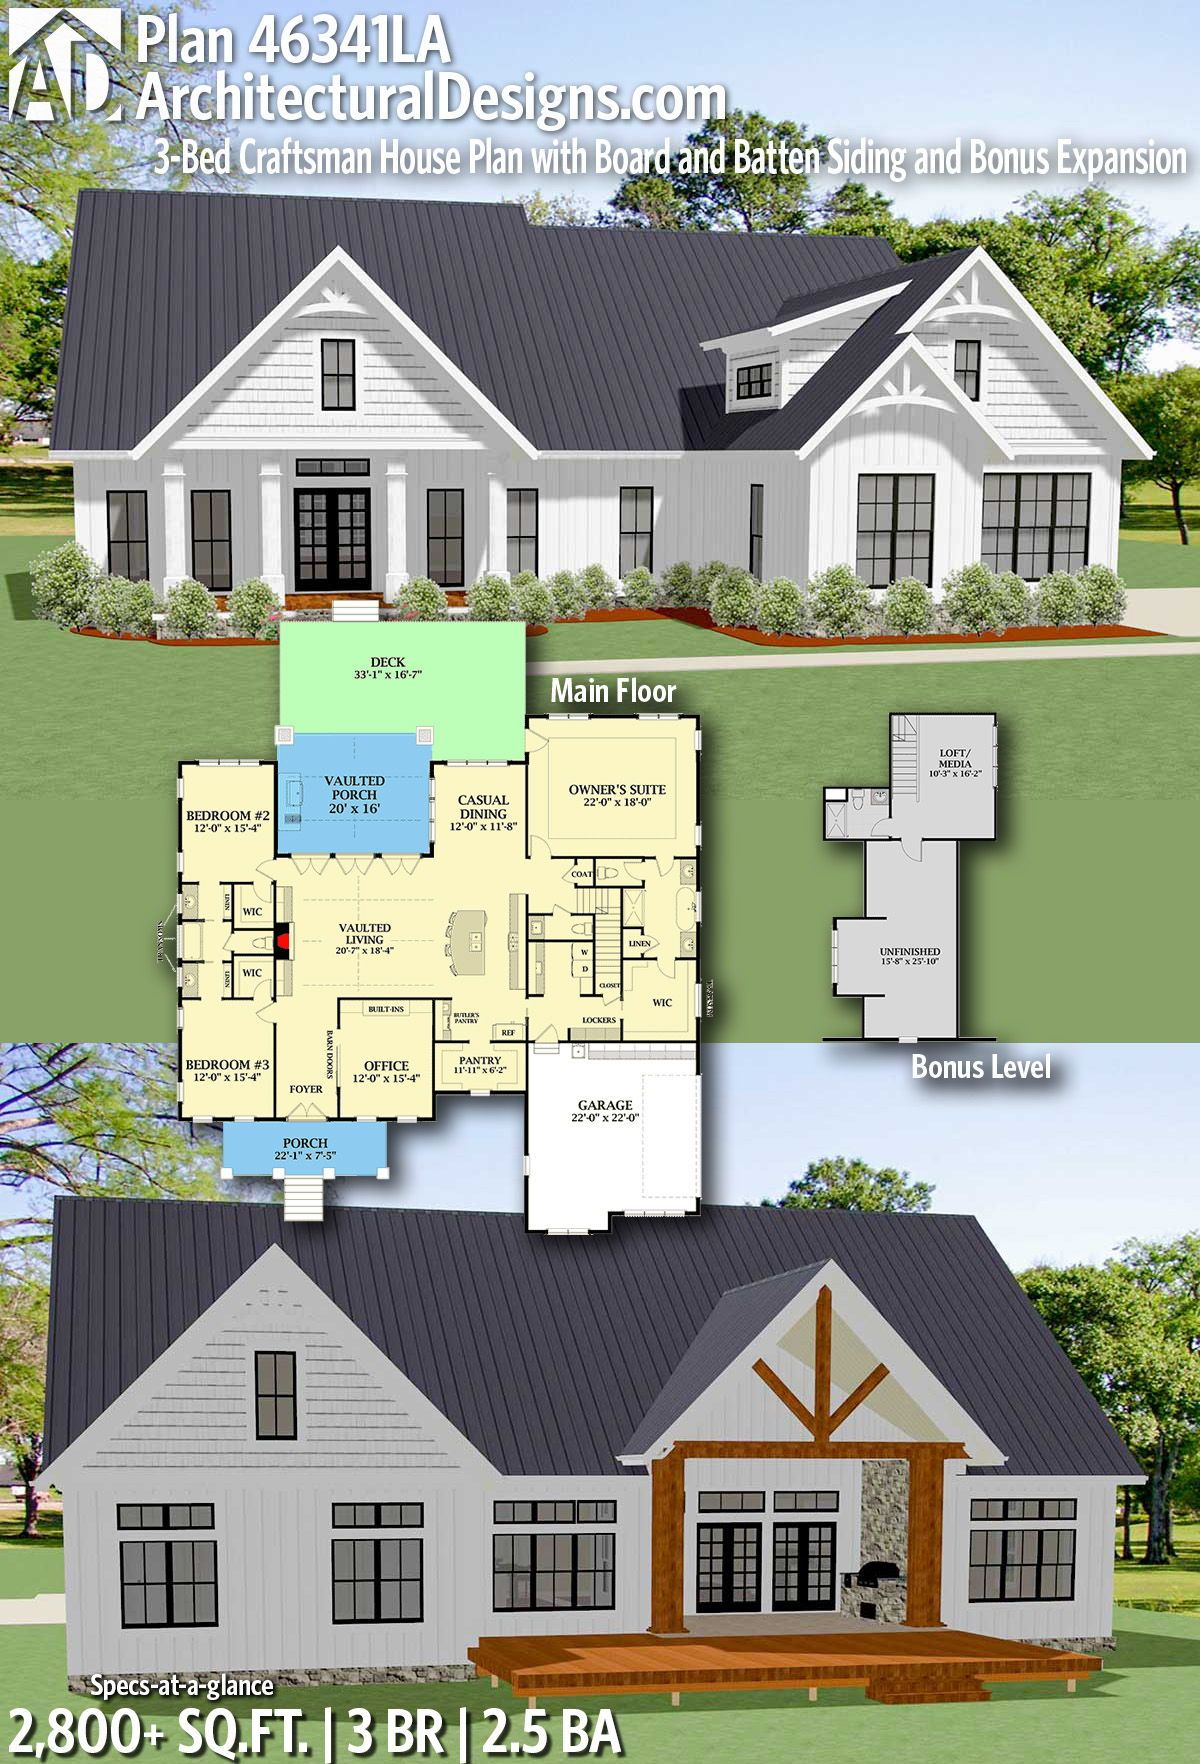 Plan LA Bed Craftsman House Plan with Board and Batten